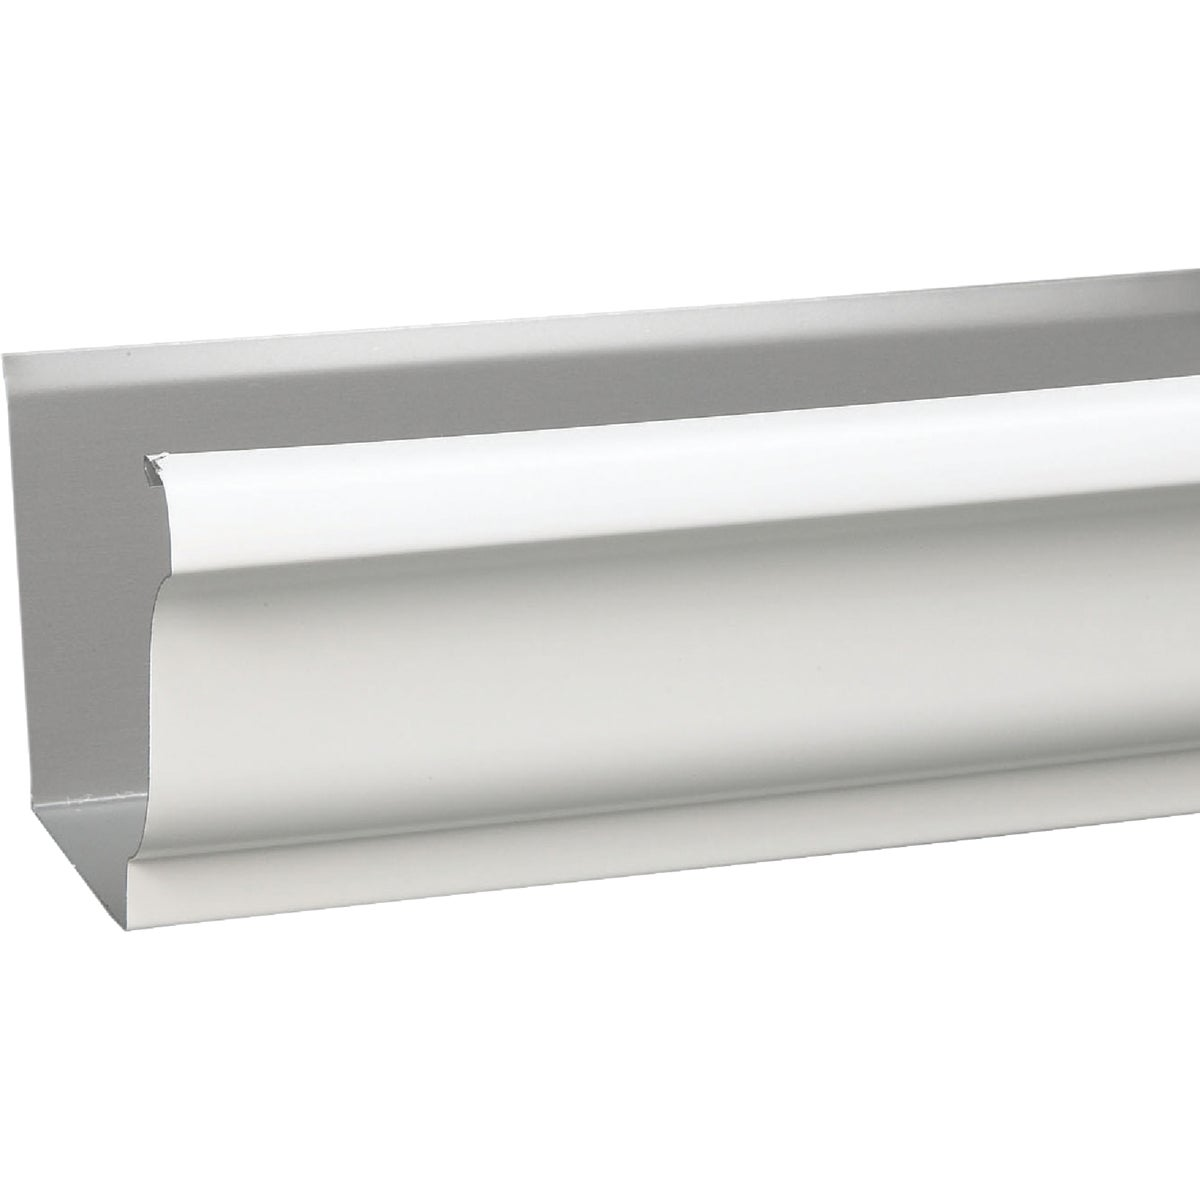 "5"" .0158 WH STEEL GUTTER - 3200700120 by Amerimax Home Prod"